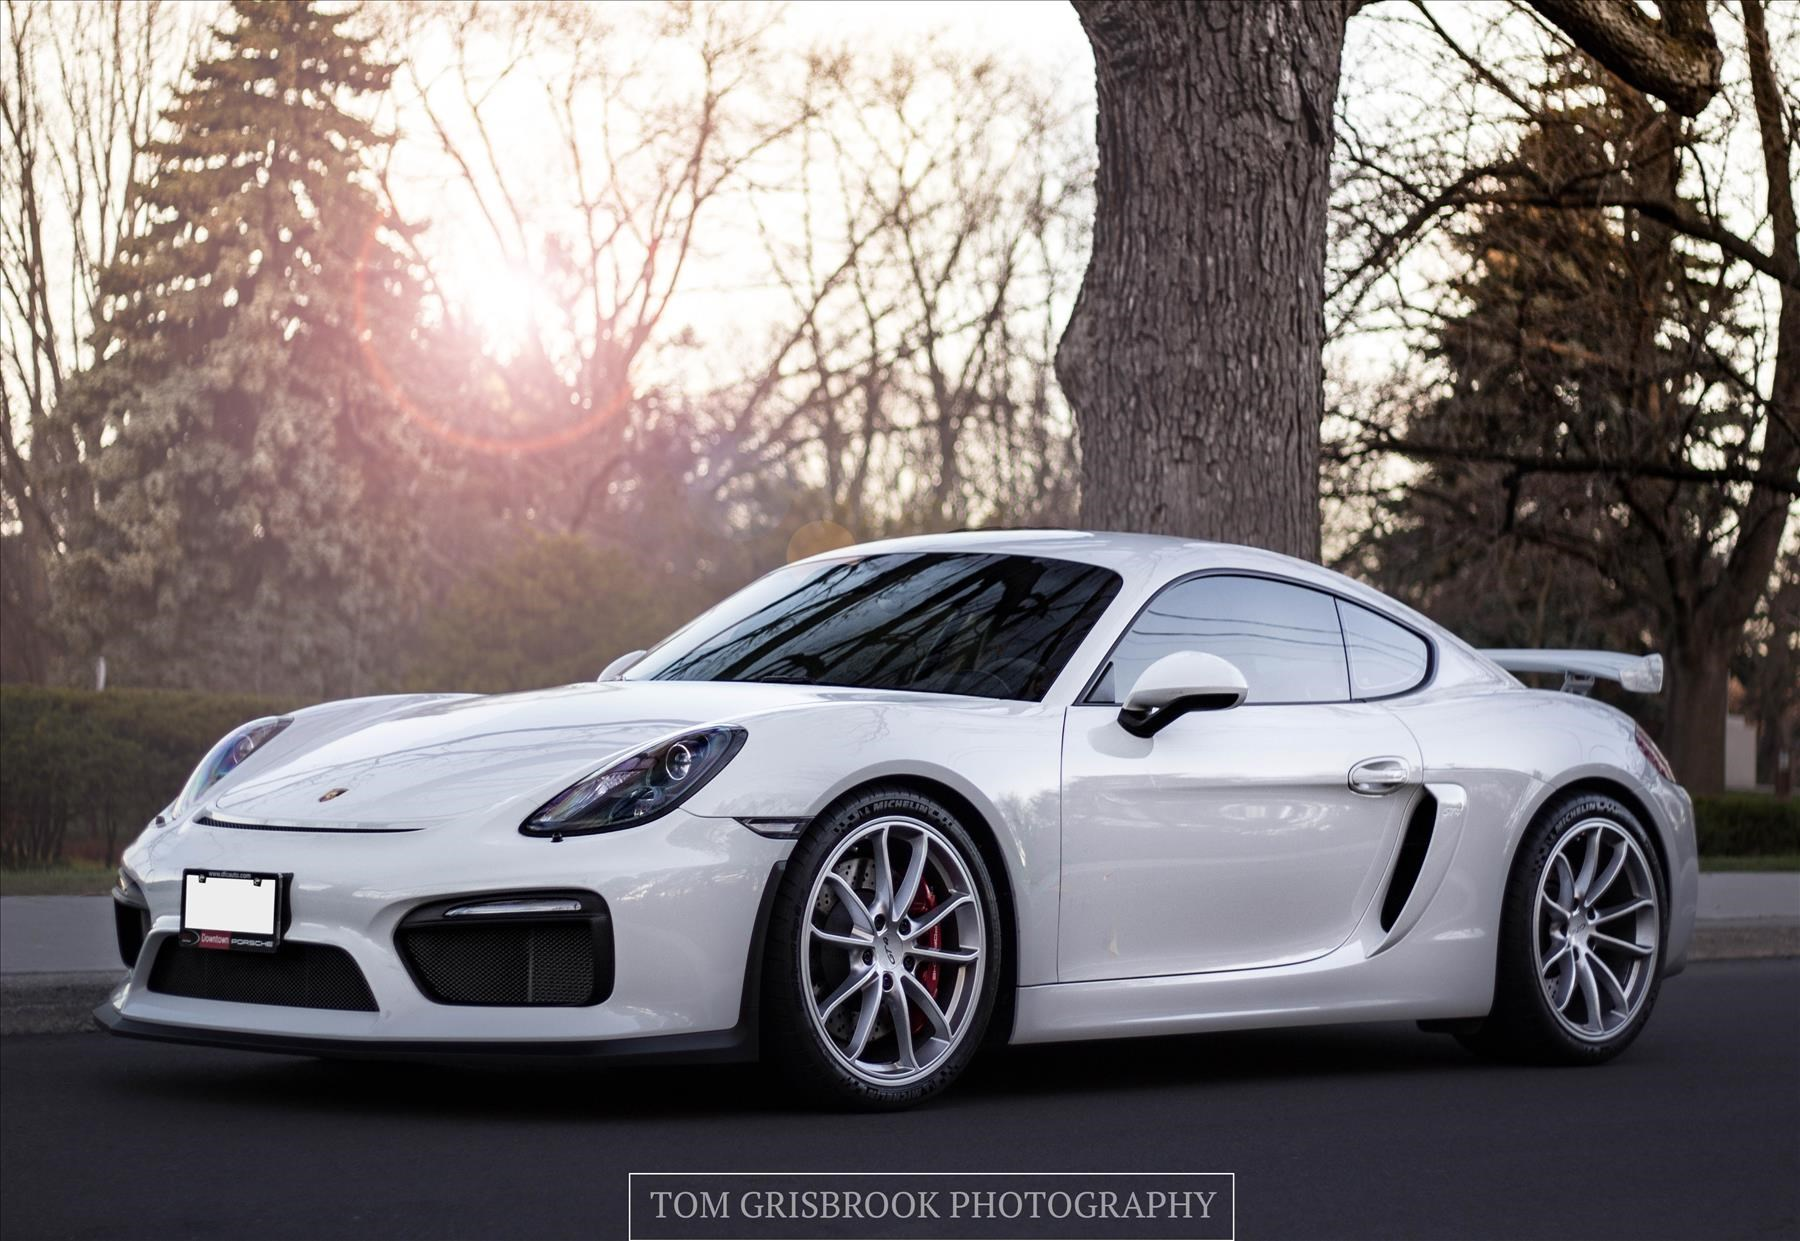 Porsche Cayman GT4 or The GT3 RS